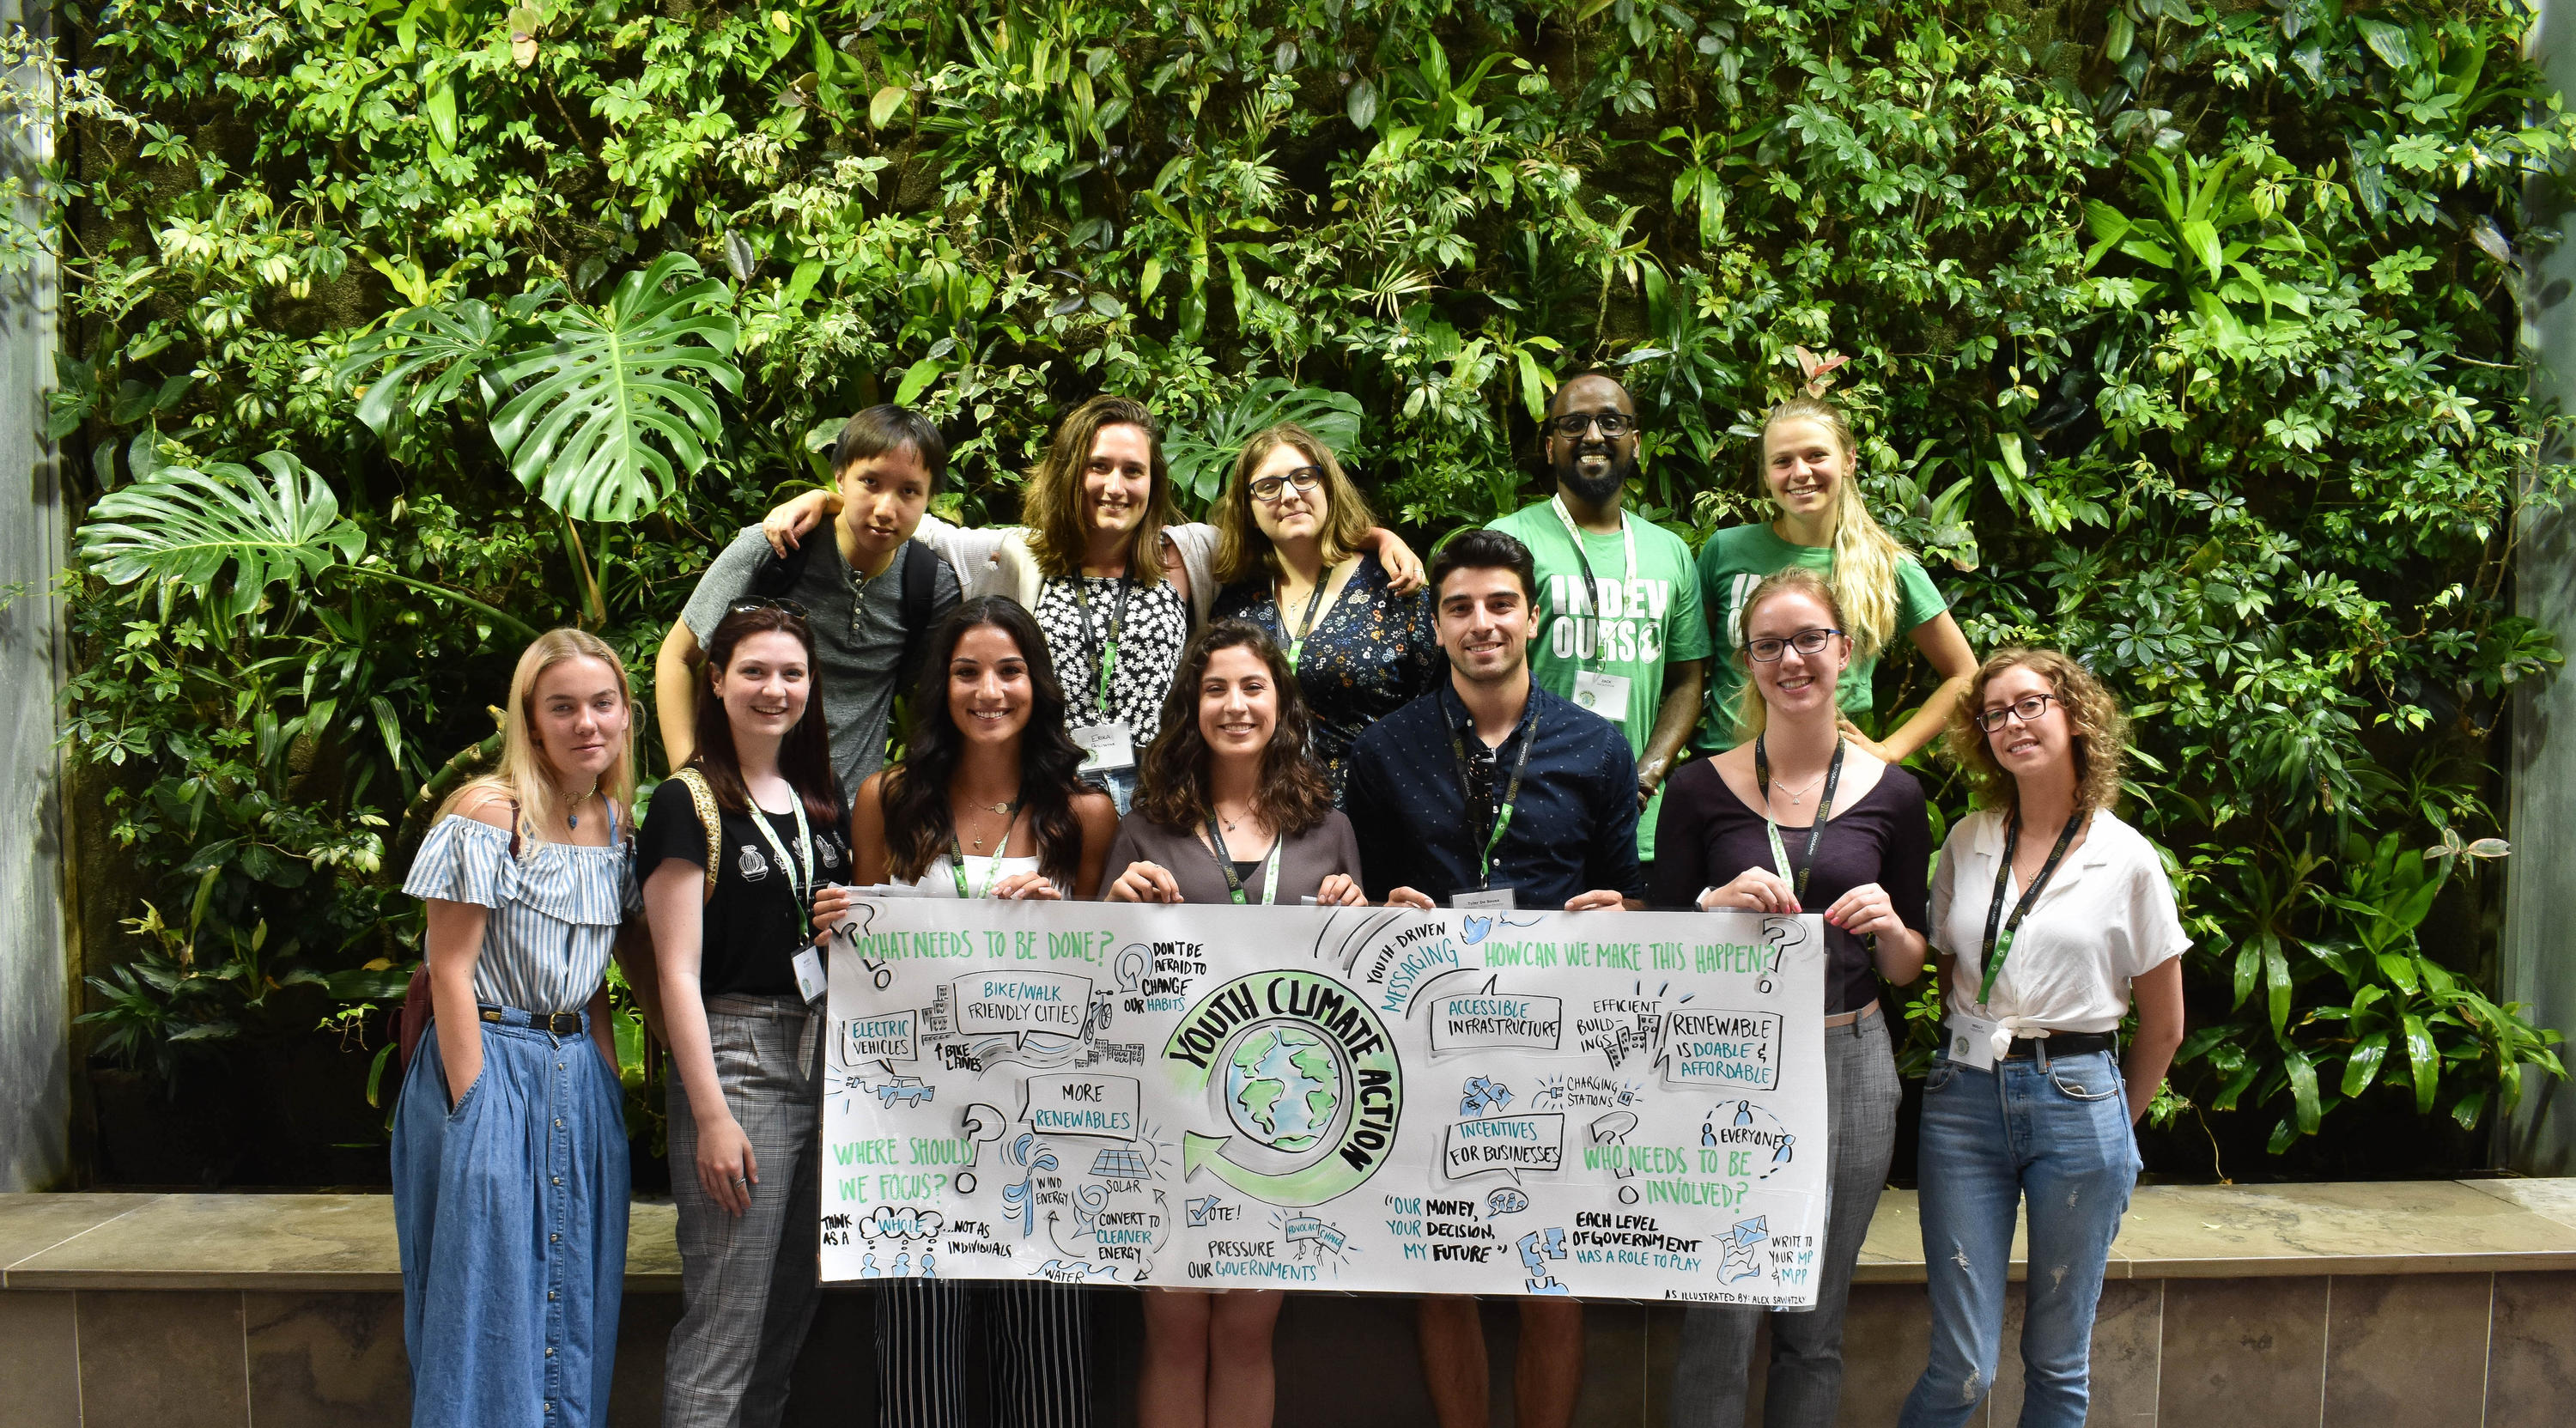 Youth Action on Climate Change team posing for a photo with their banner